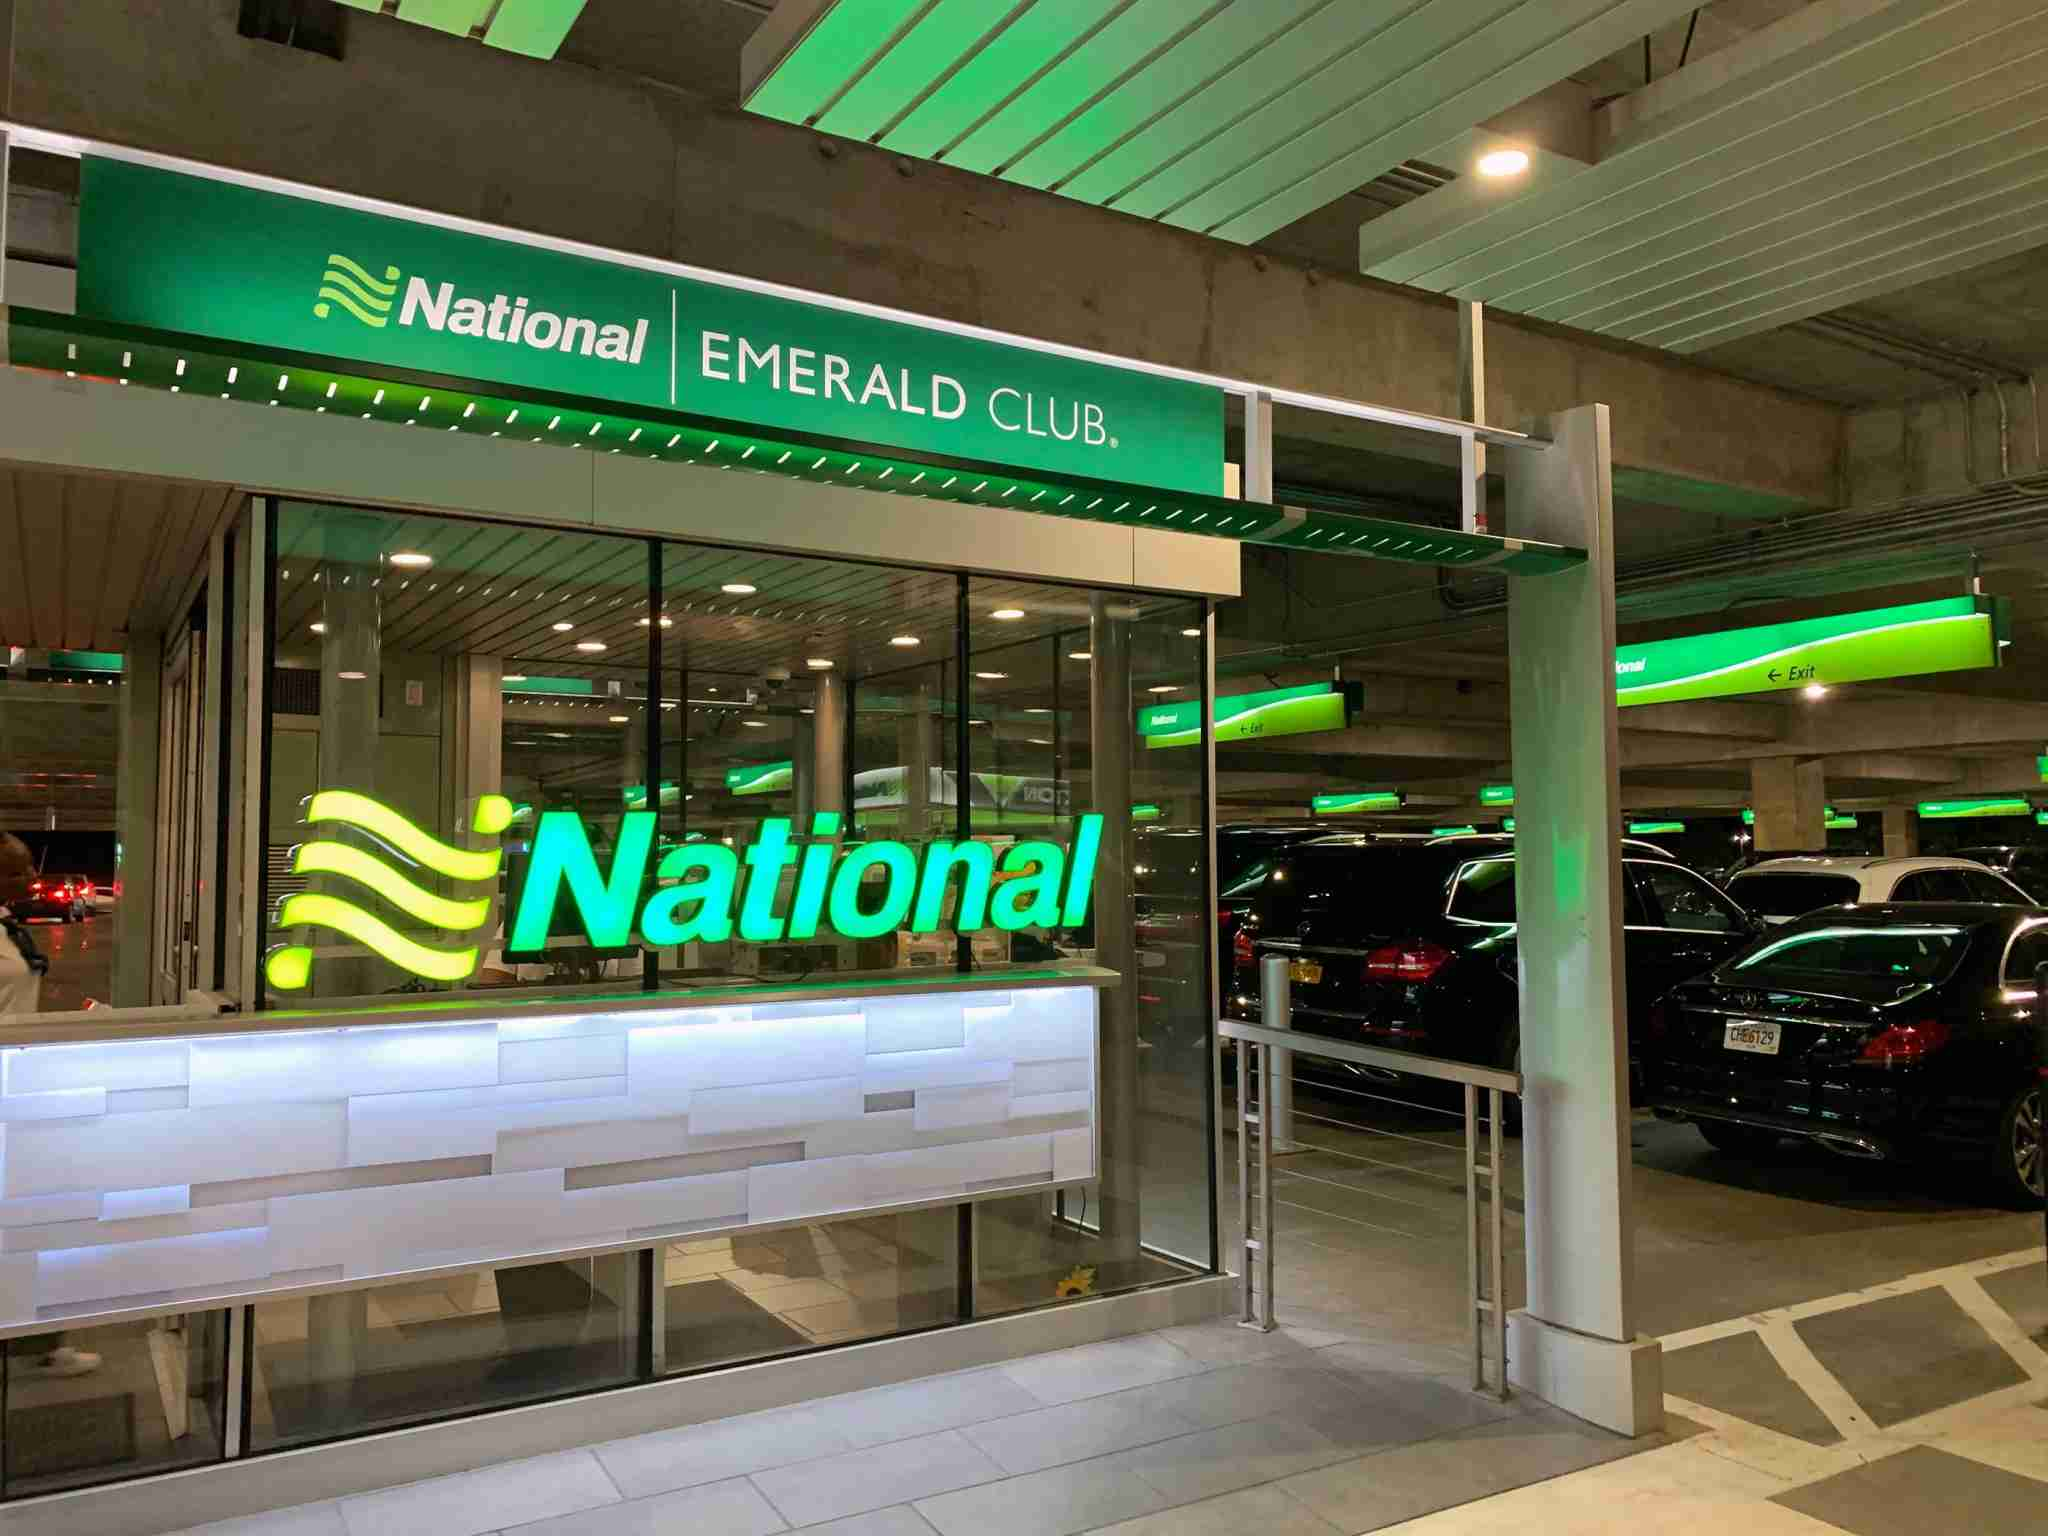 national-emerald-club-counter-airport-2019